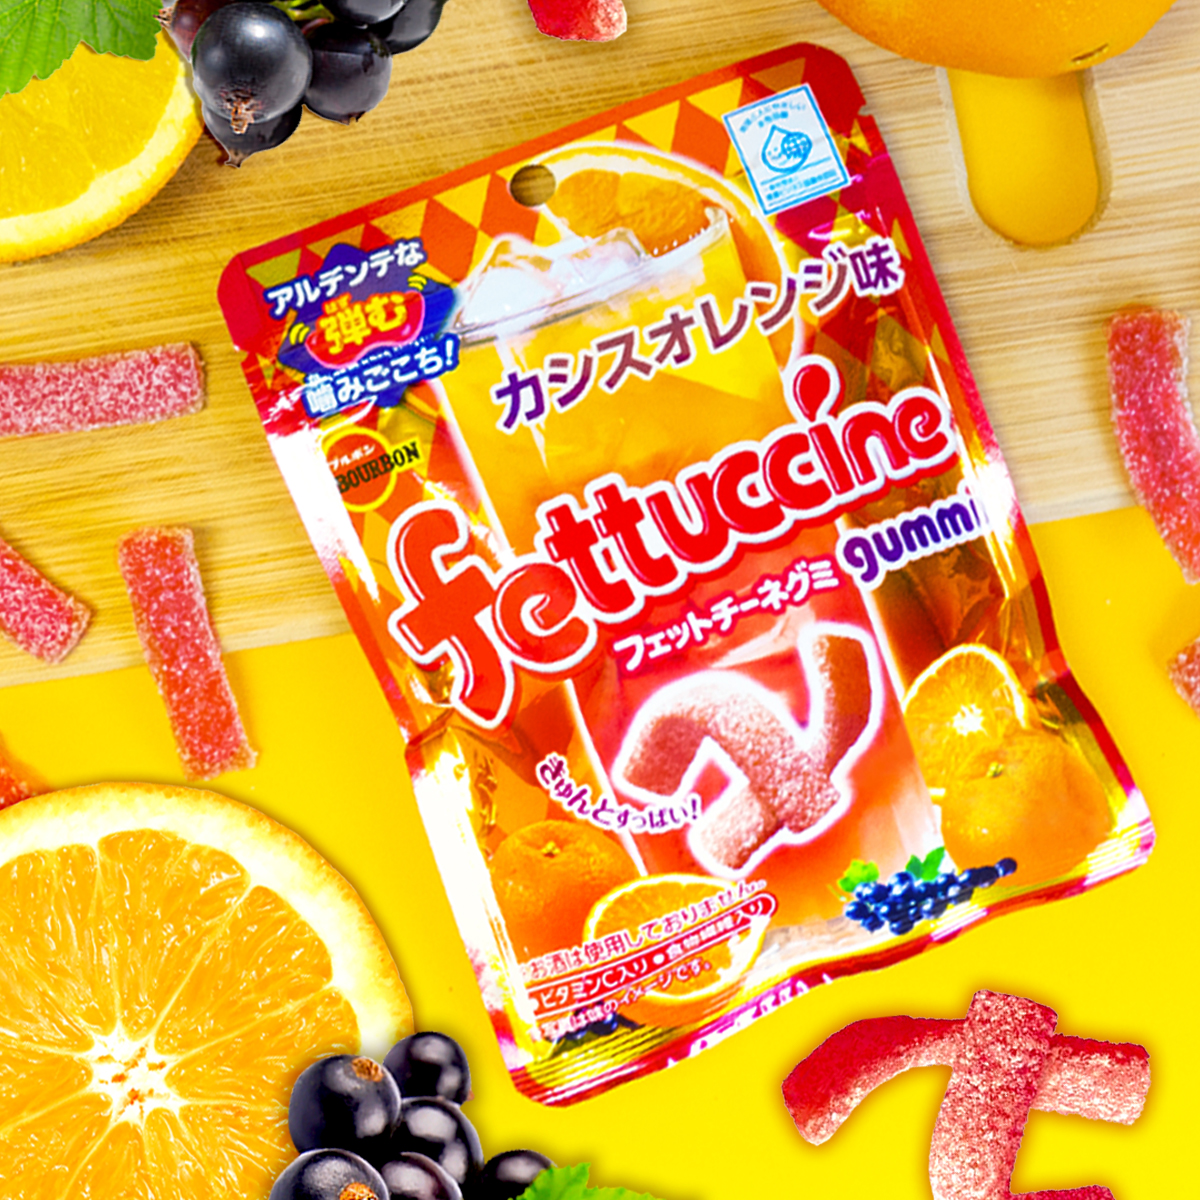 Japan Crate On Twitter Feed Your Sweet Tooth With Fettuccine